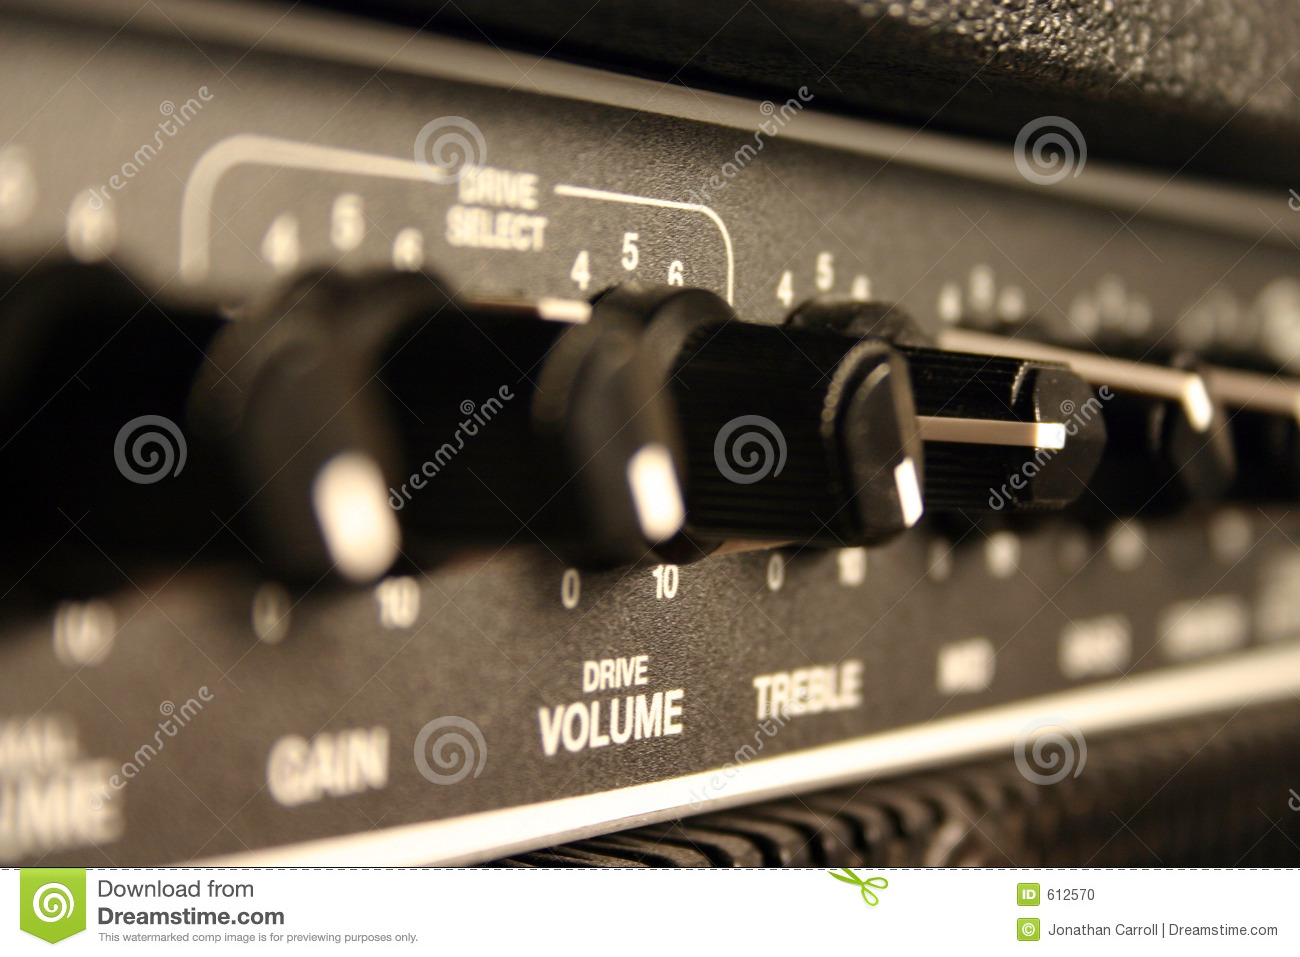 Guitar Amp / Speaker 01 Stock Photo - Image: 612570